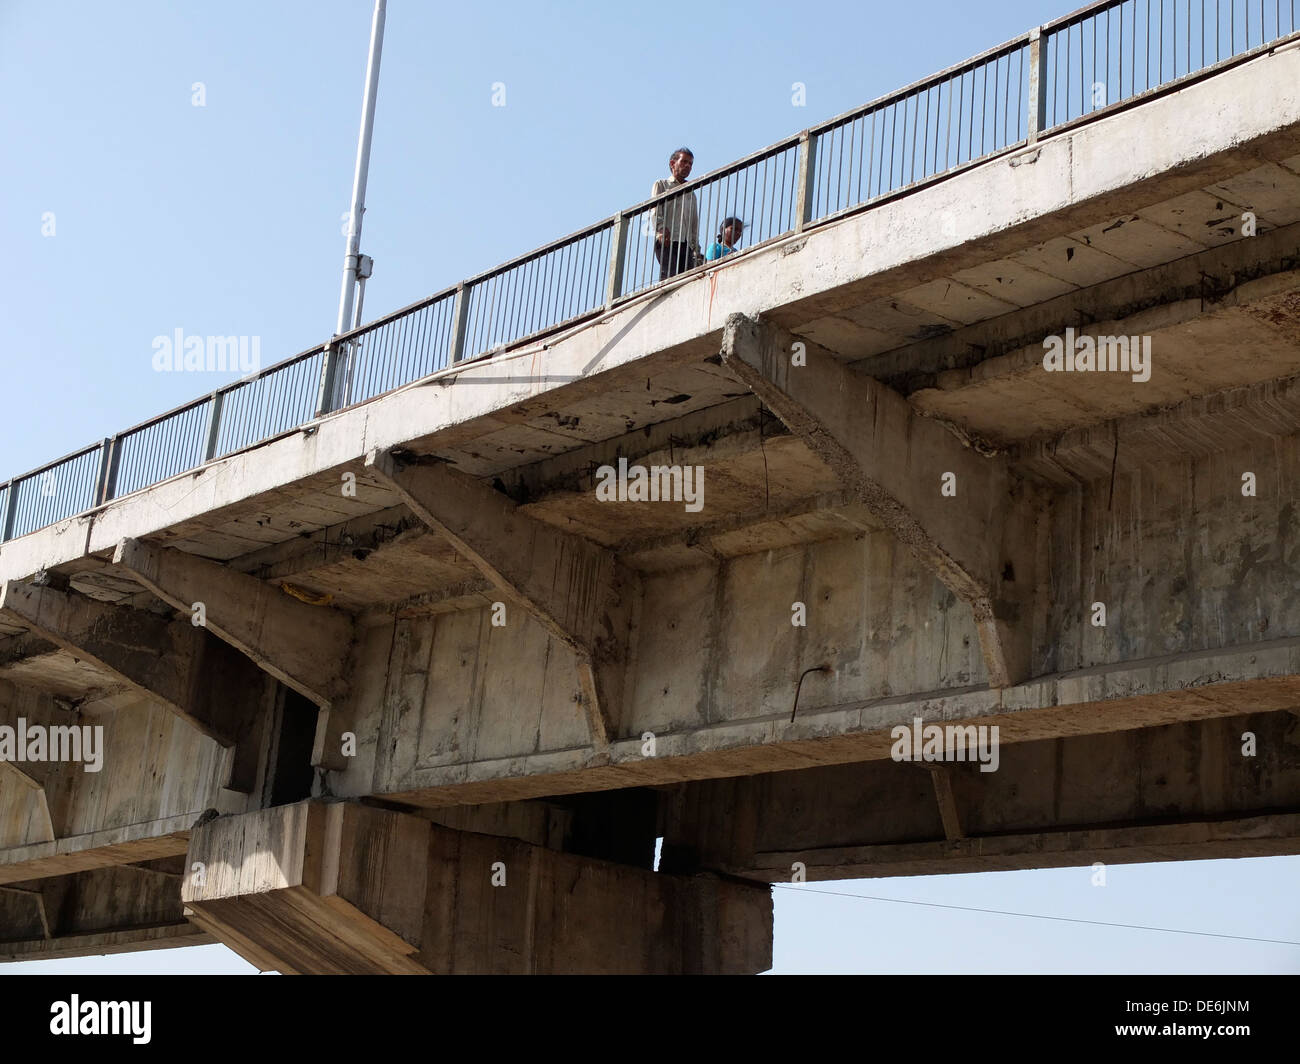 India, Uttar Pradesh, Agra, newly constructed bridge over Yamuna River showing shoddy construction quality - Stock Image